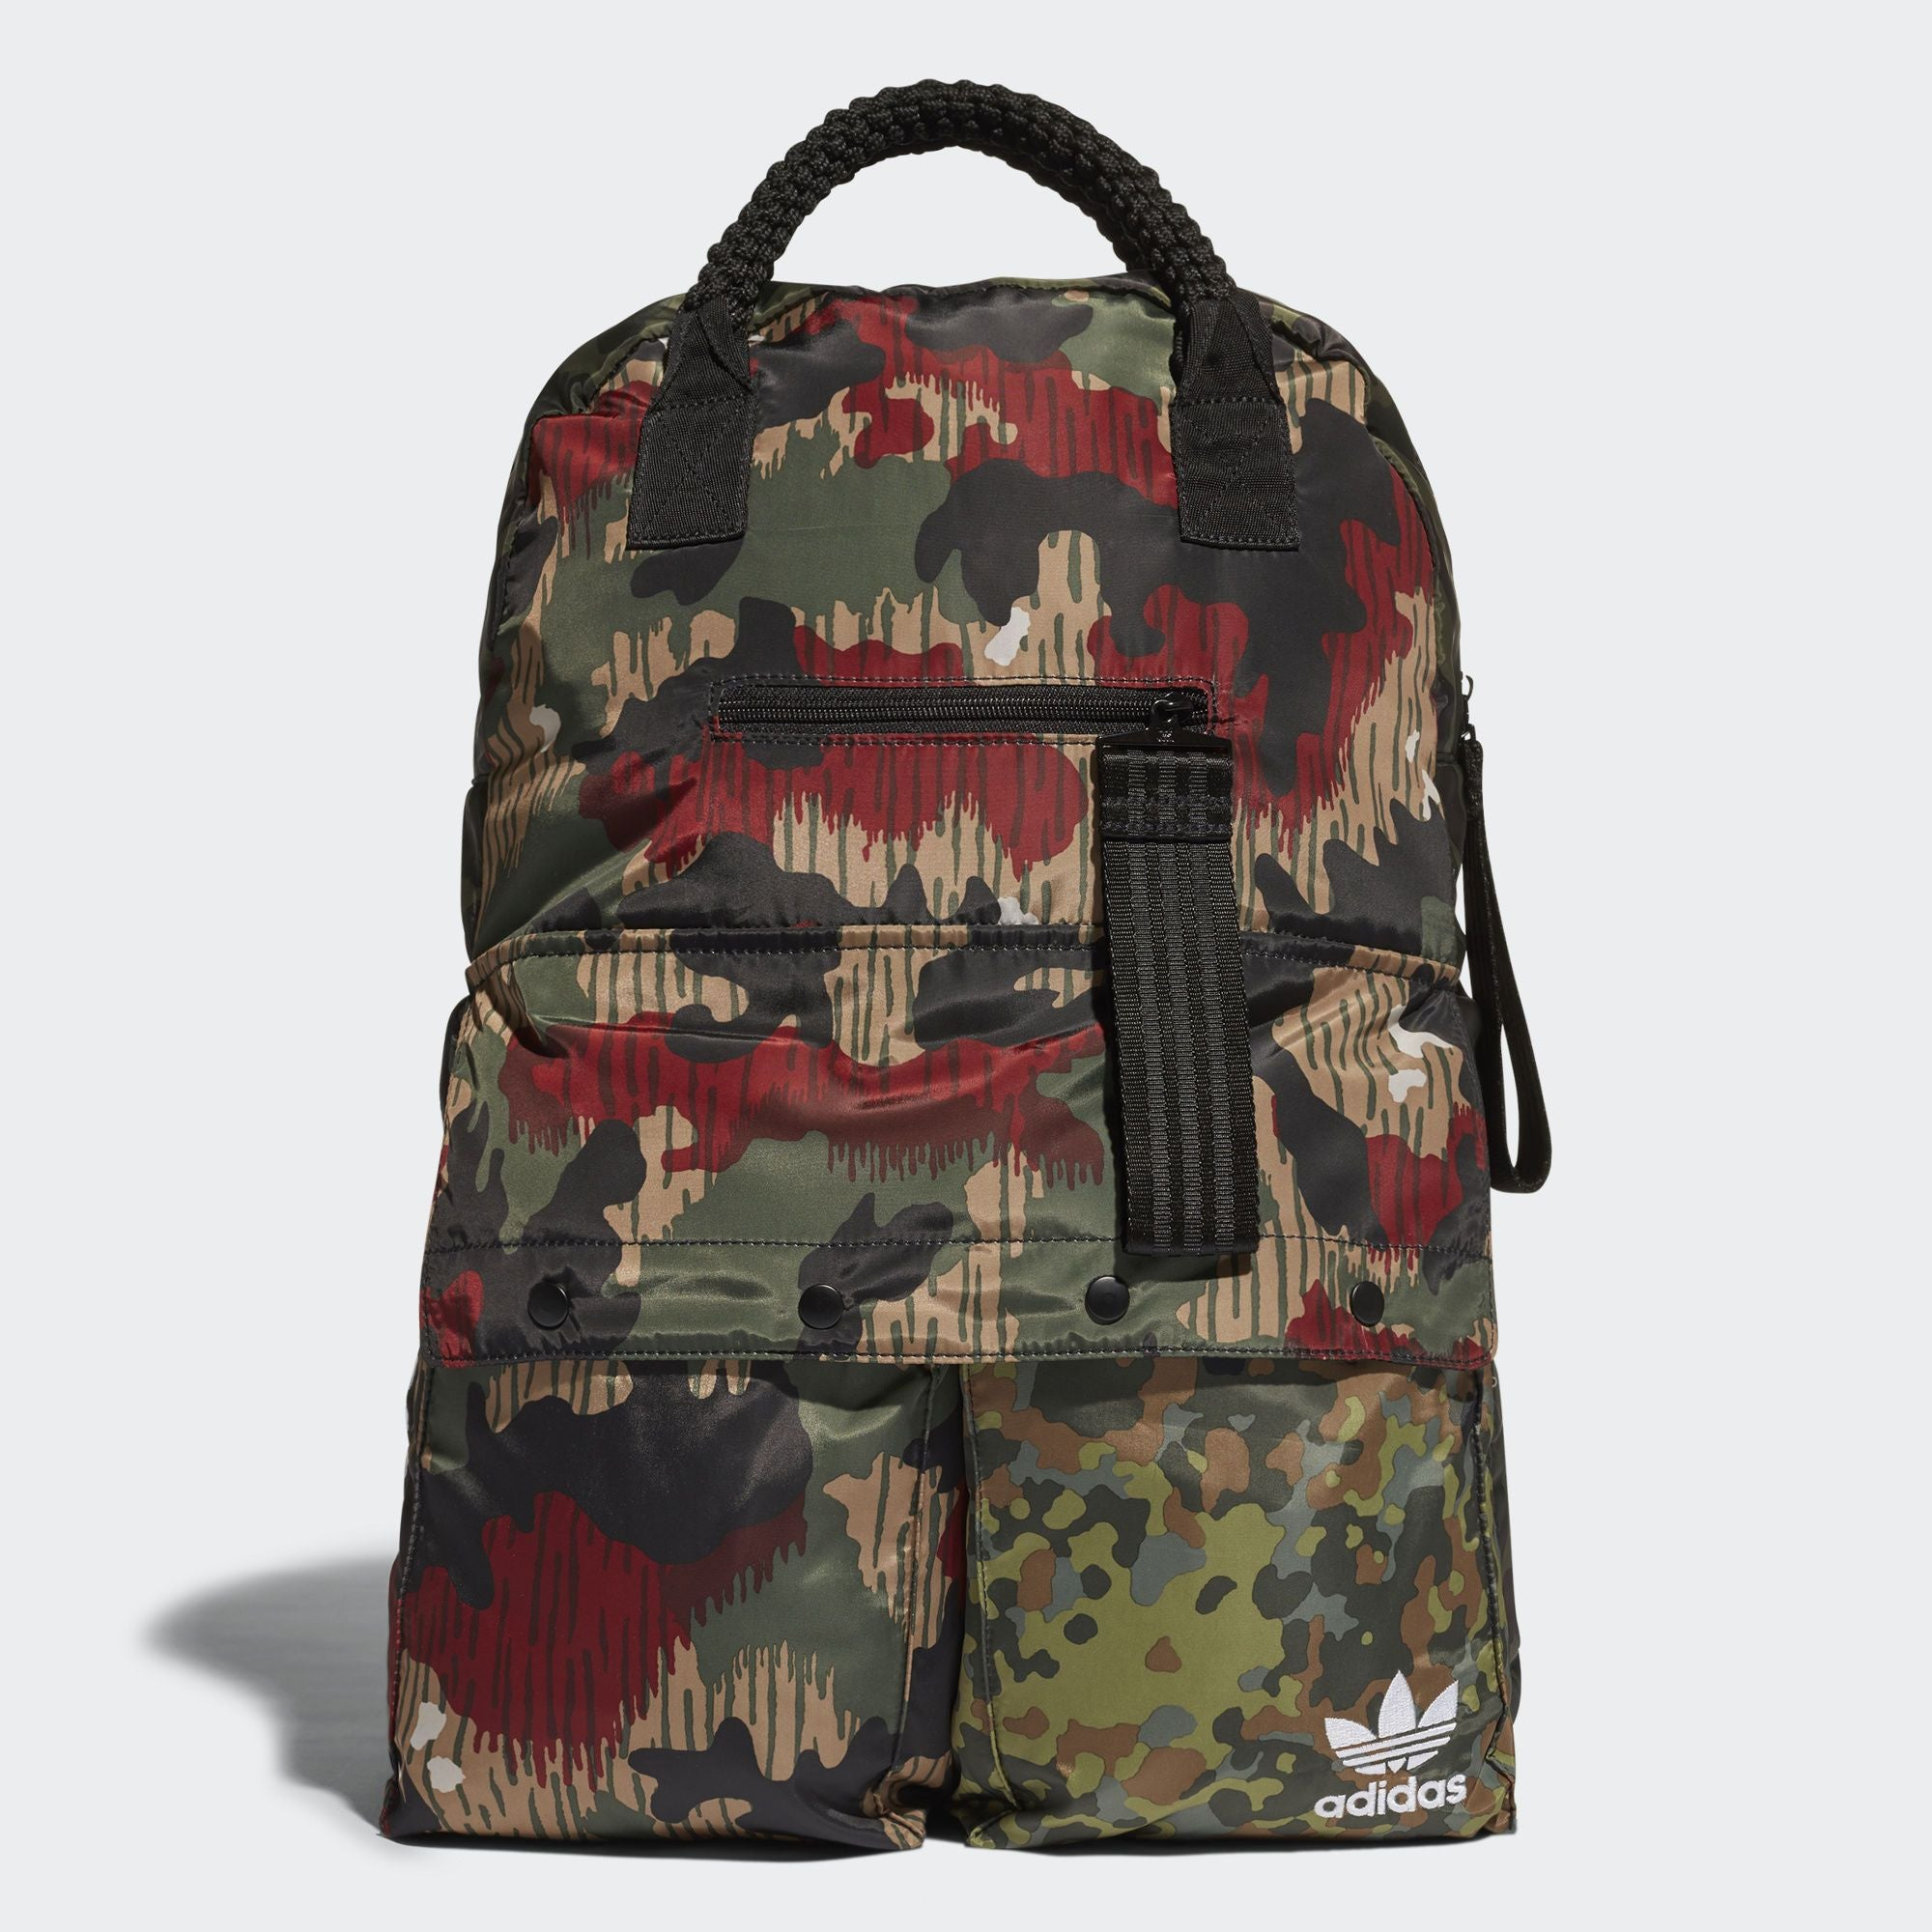 29a990136b36 adidas Originals Pharrell Williams HU Hiking Backpack Camouflage ...